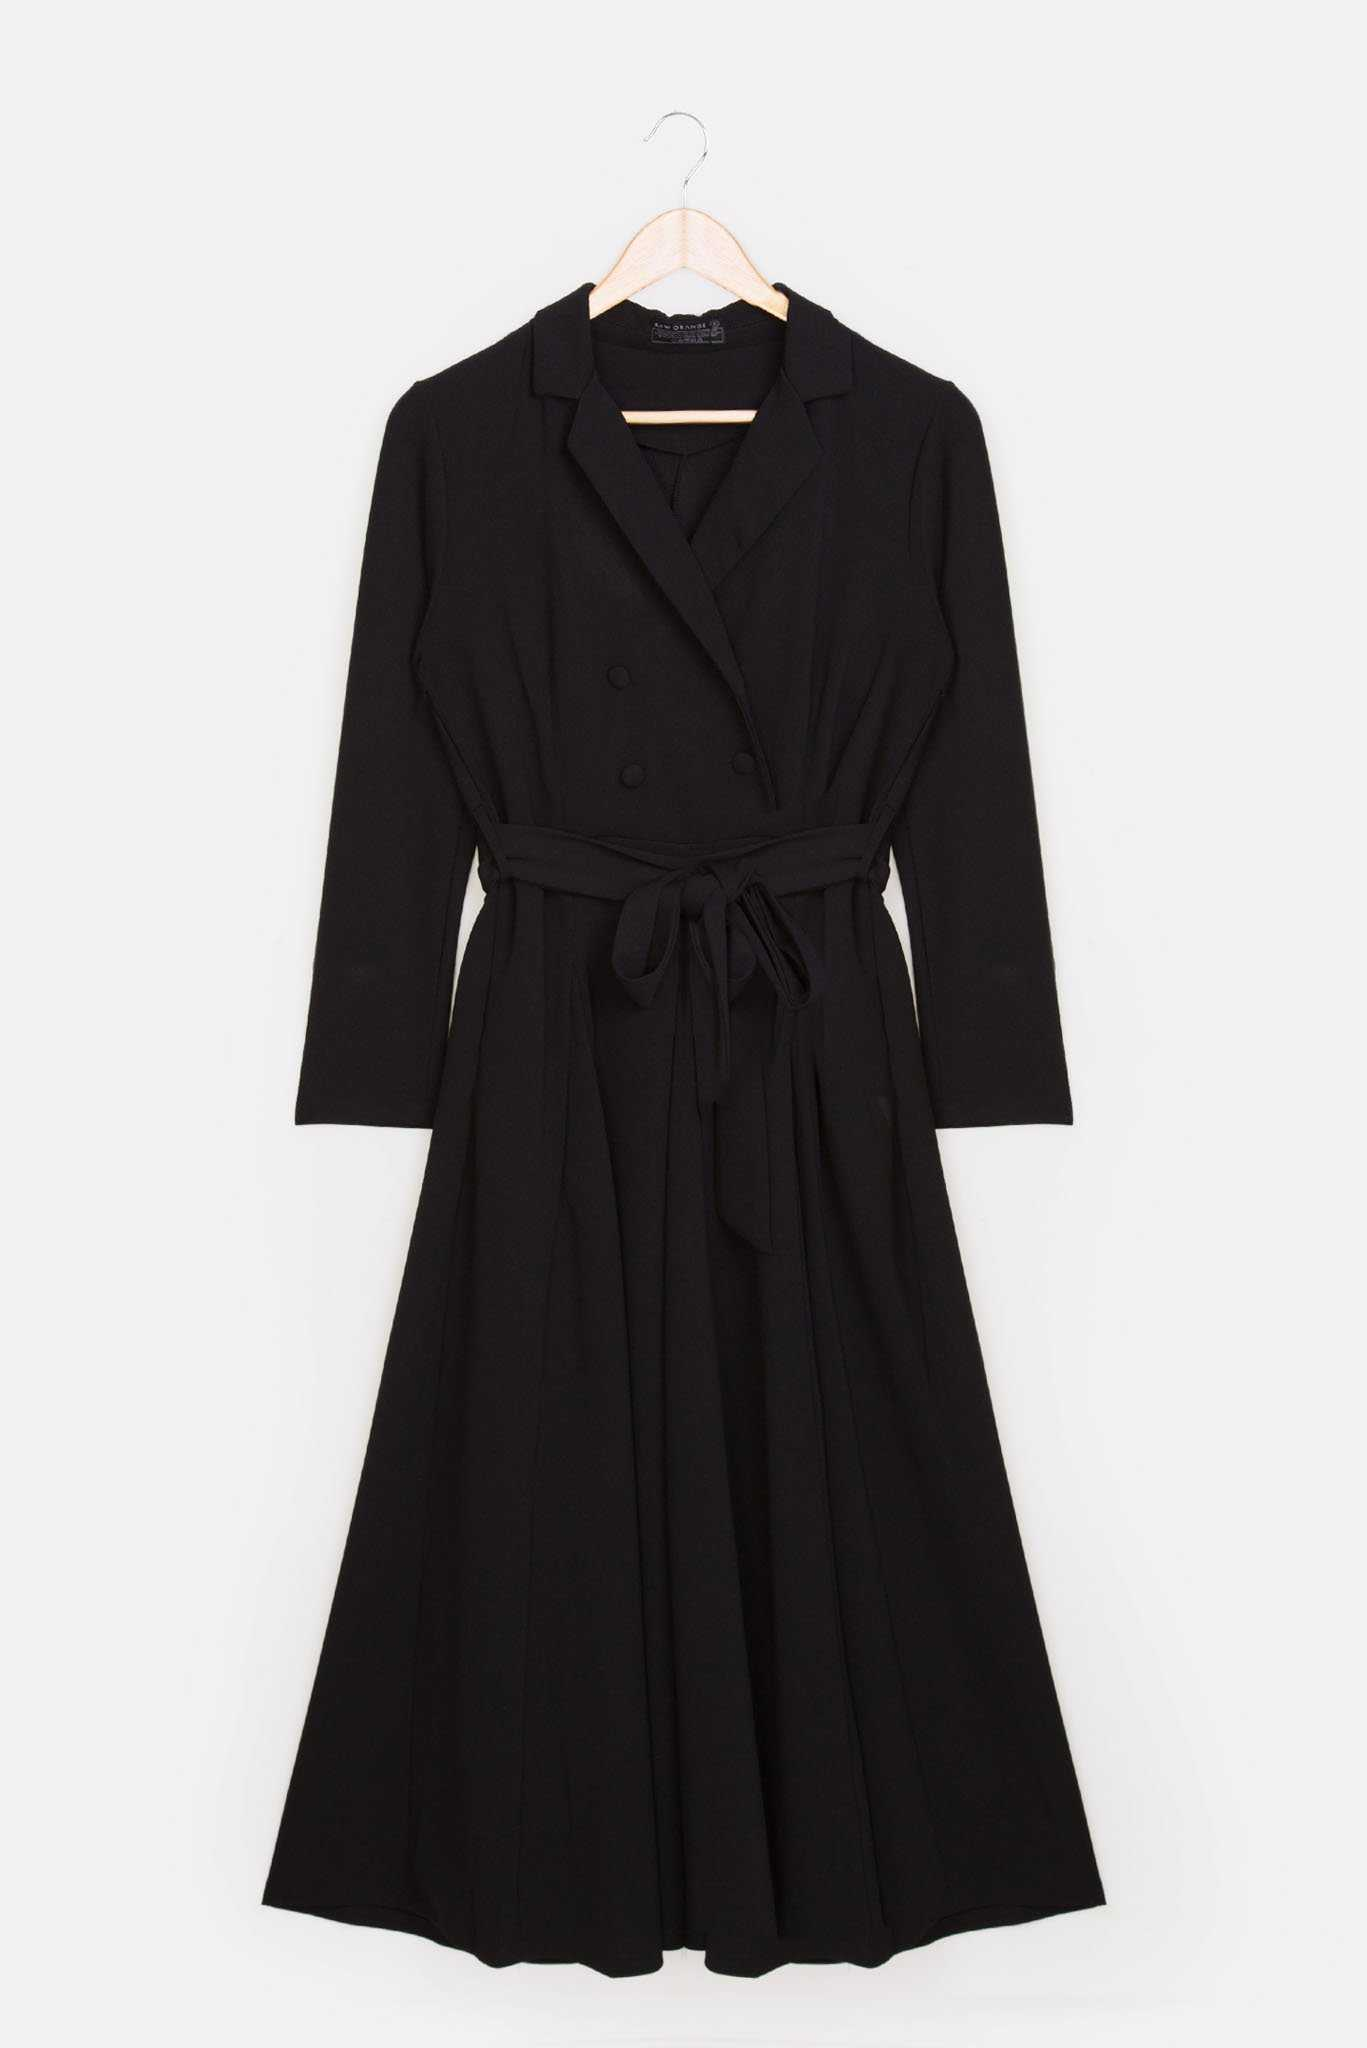 Trench Dress - Black | Raw Orange